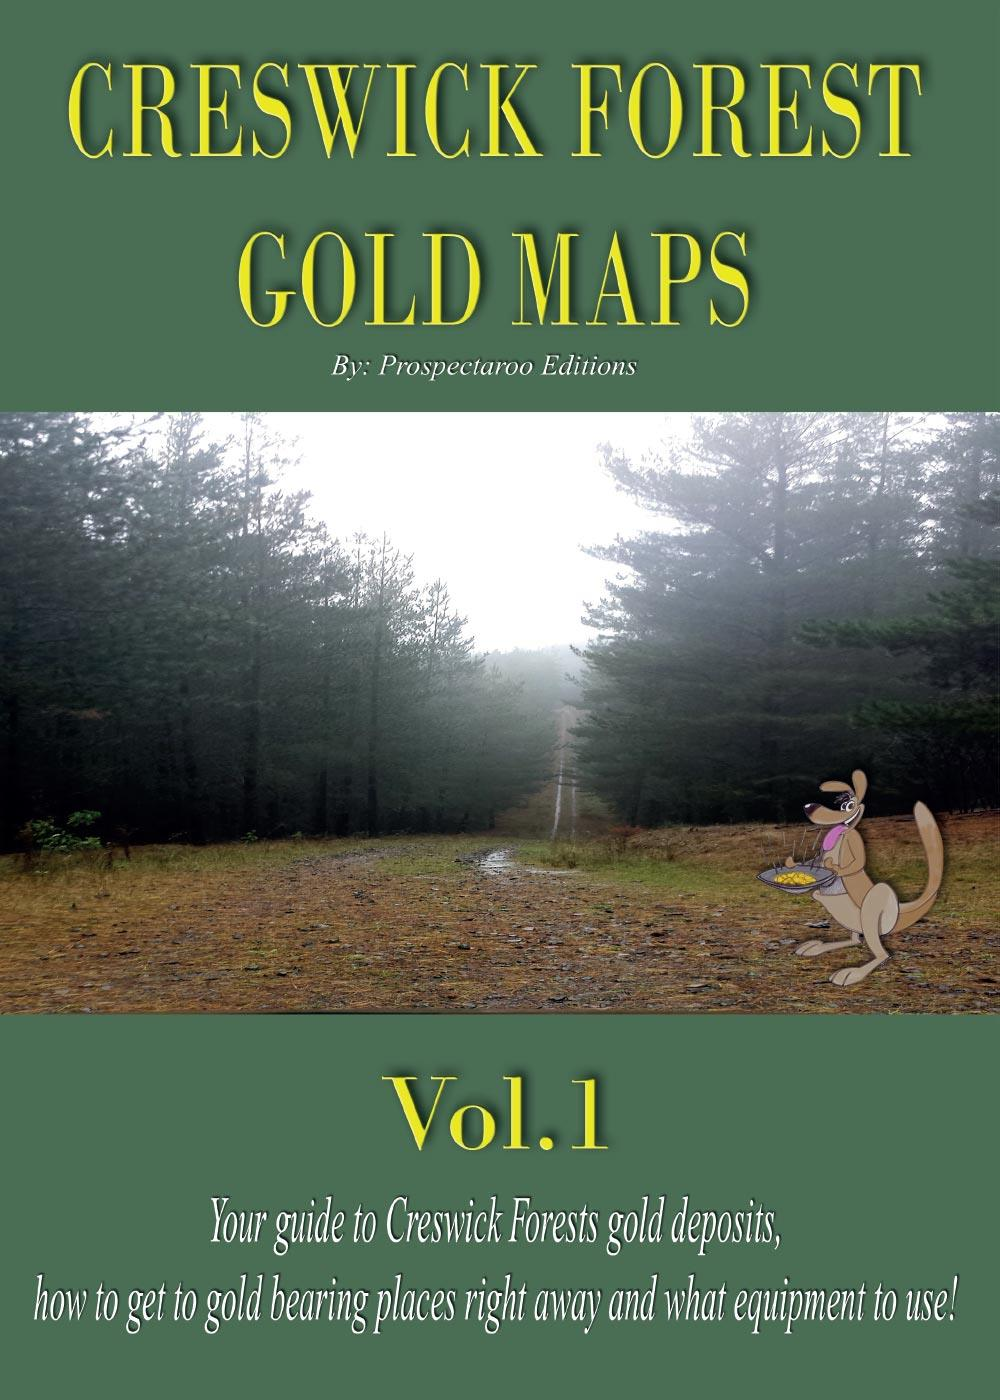 Creswick Forest Gold Maps Vol.1